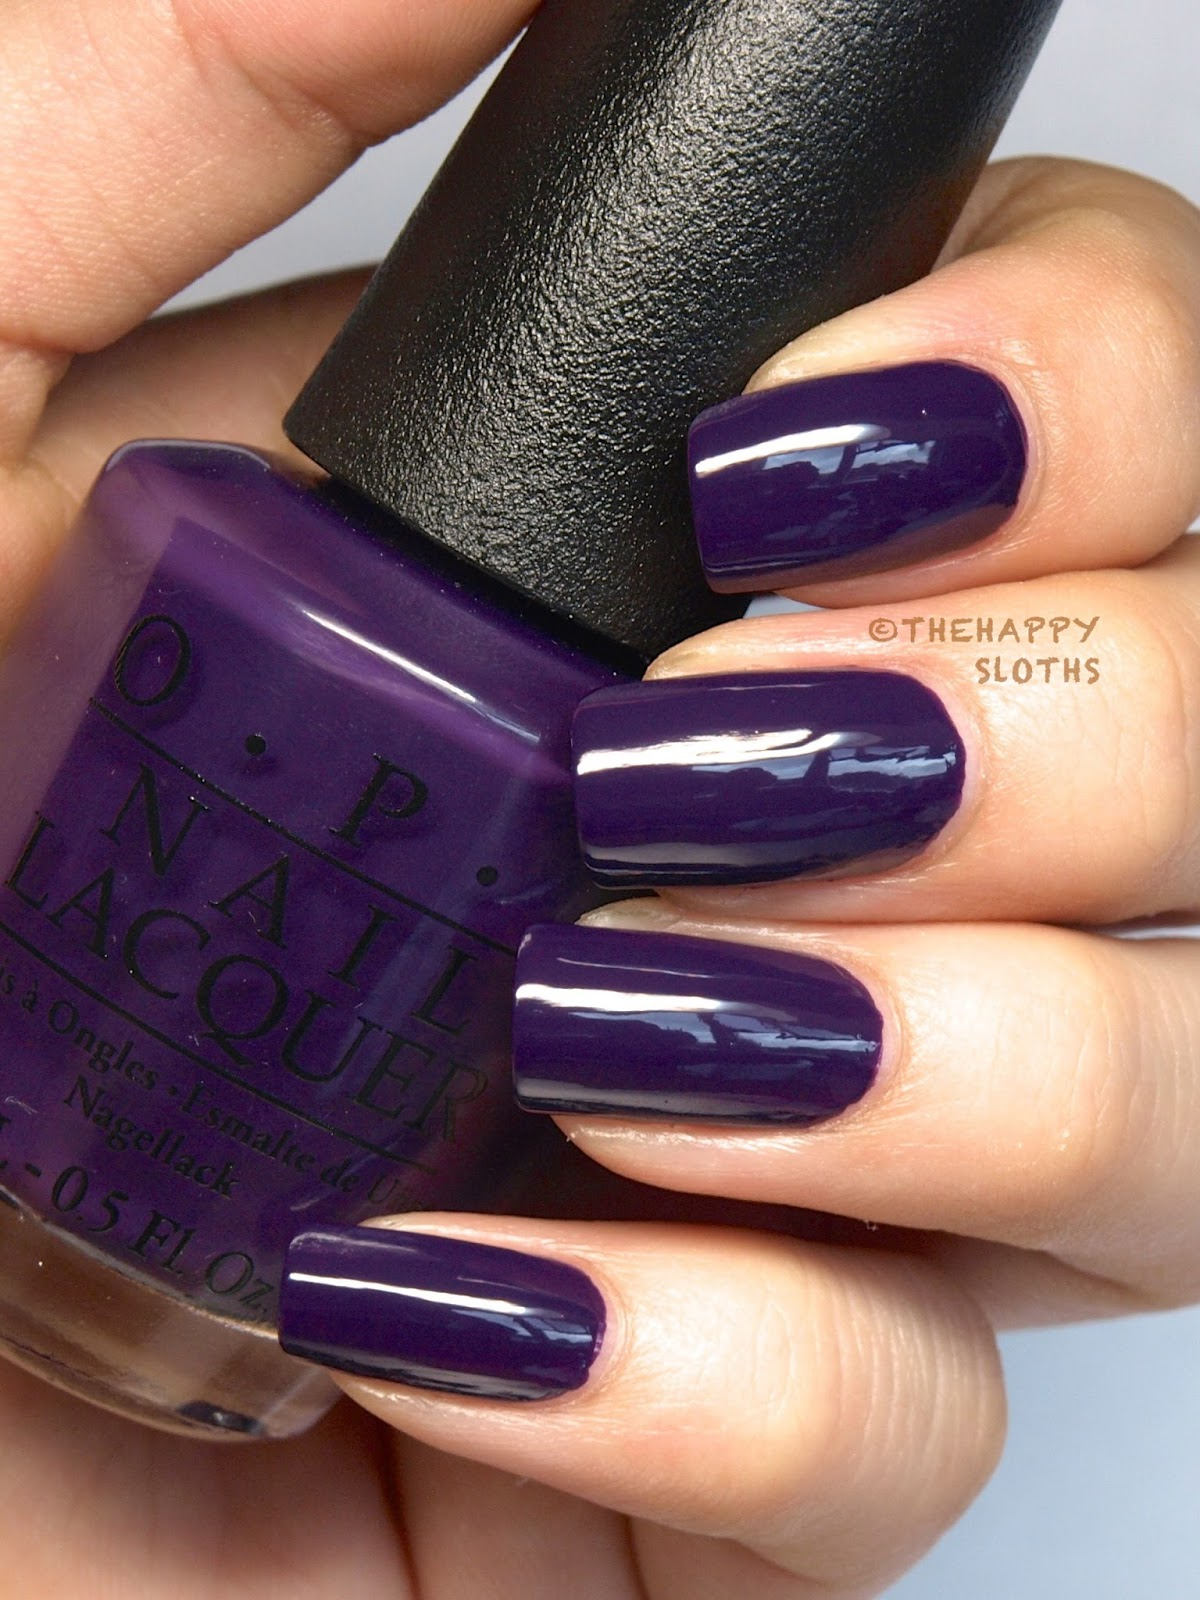 OPI Coca-Cola Limited Edition Nail Polishes in \